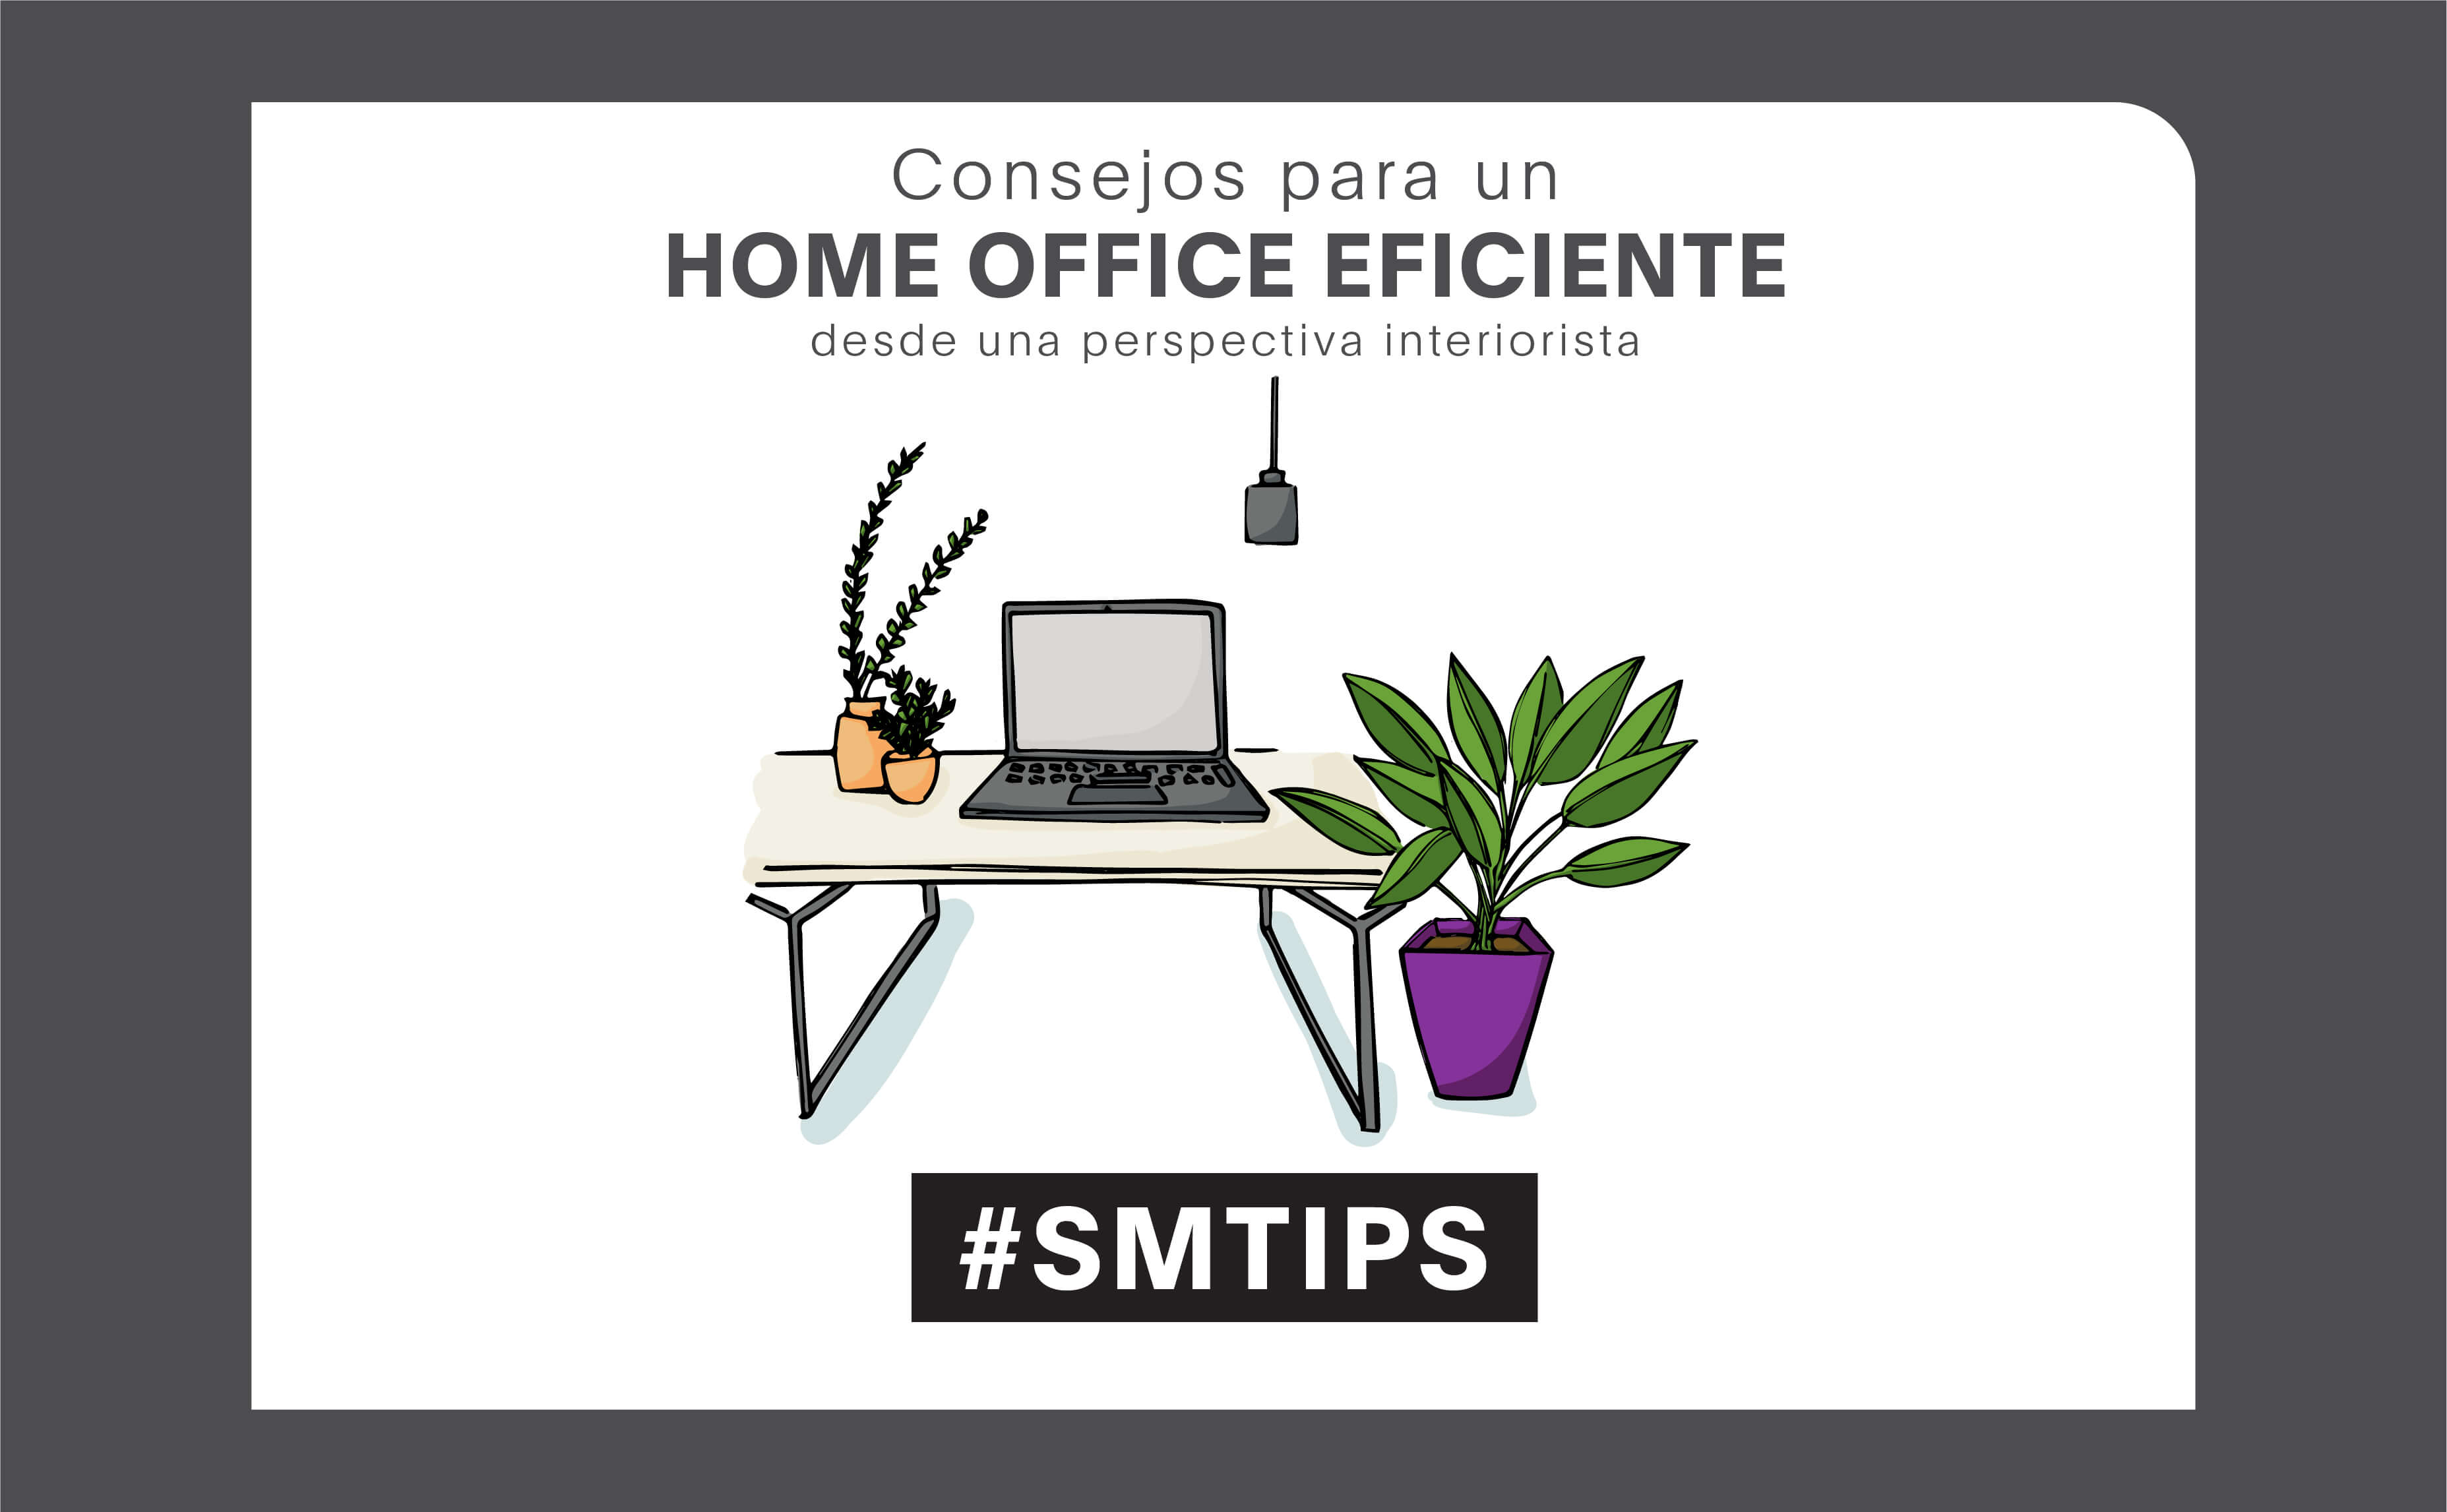 #SMTips: 6 Tips para un Home Office Eficiente